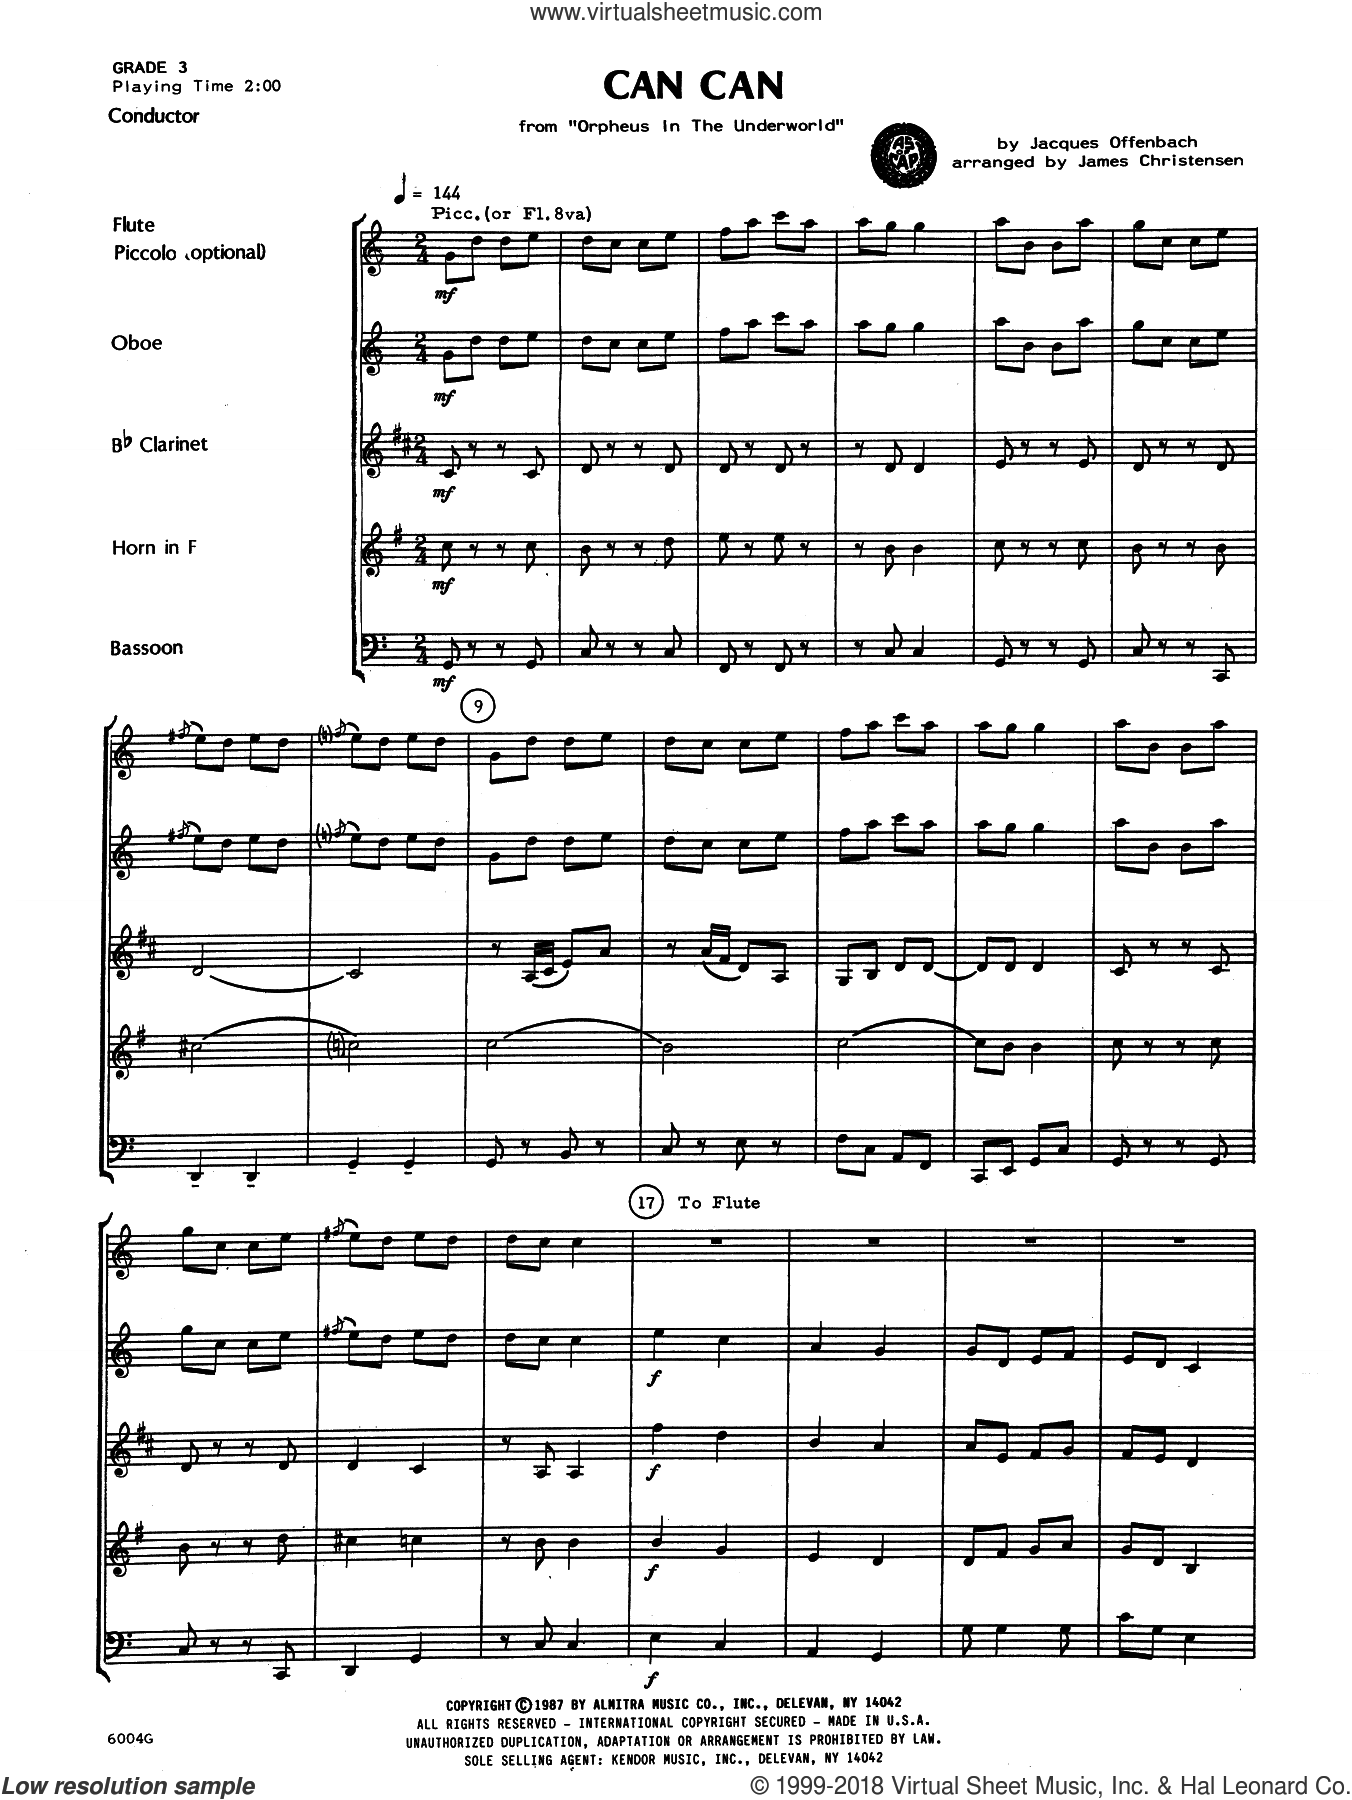 Can Can (COMPLETE) sheet music for wind quintet by Jacques Offenbach and James Christensen, classical score, intermediate skill level